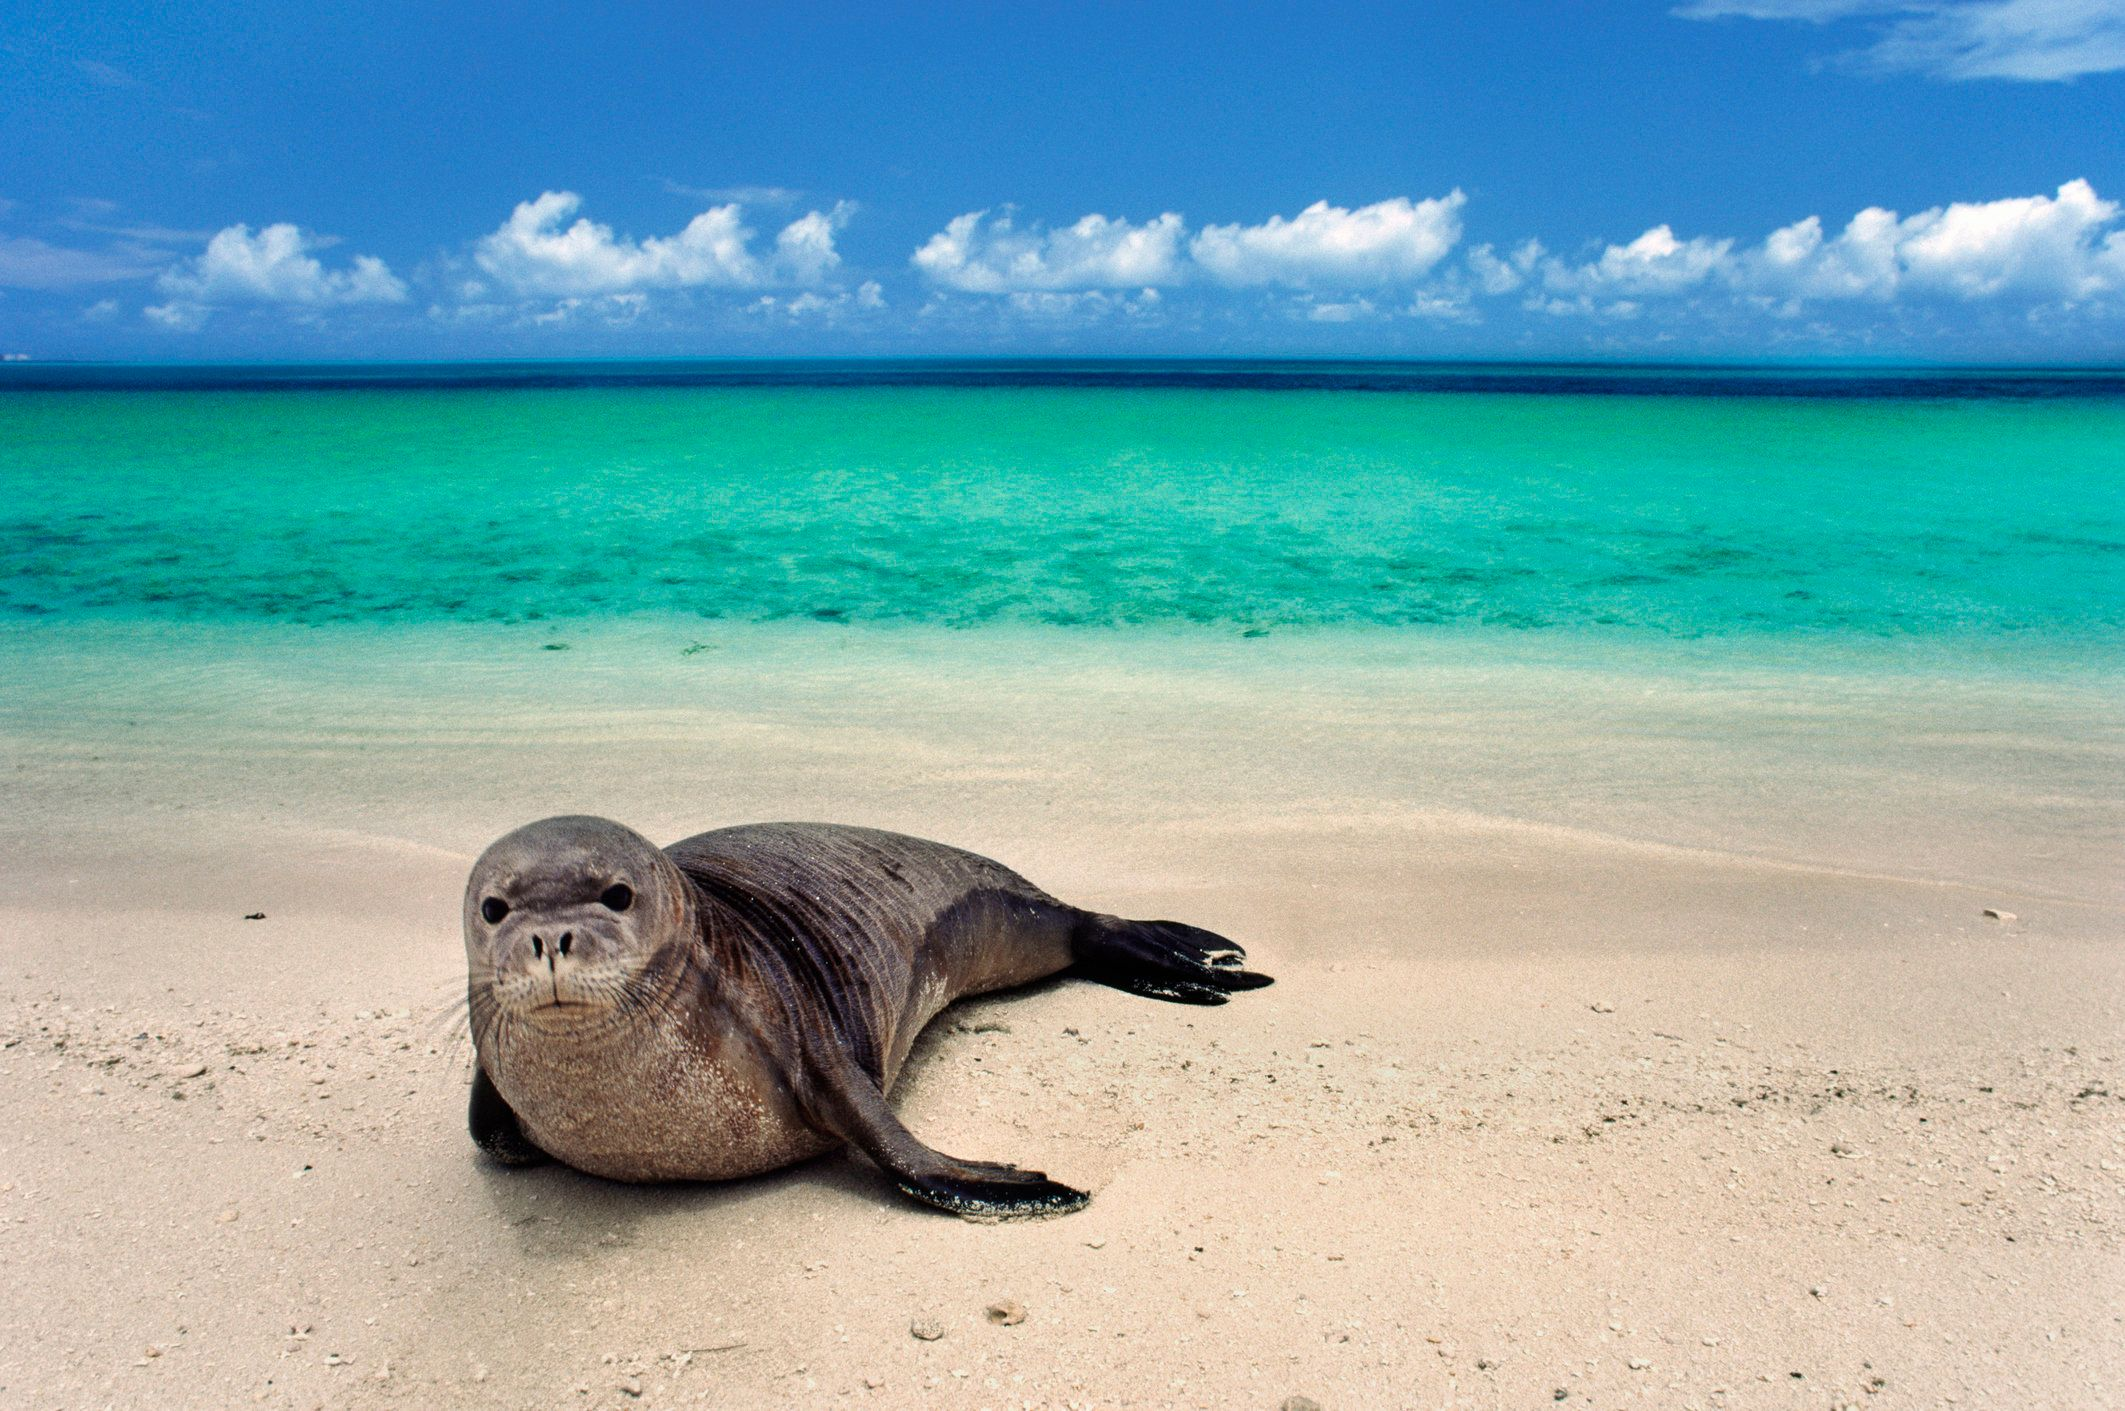 Hawaiian monk seal on beach, Monachus schauinslandi, Hawaiian Leeward Islands